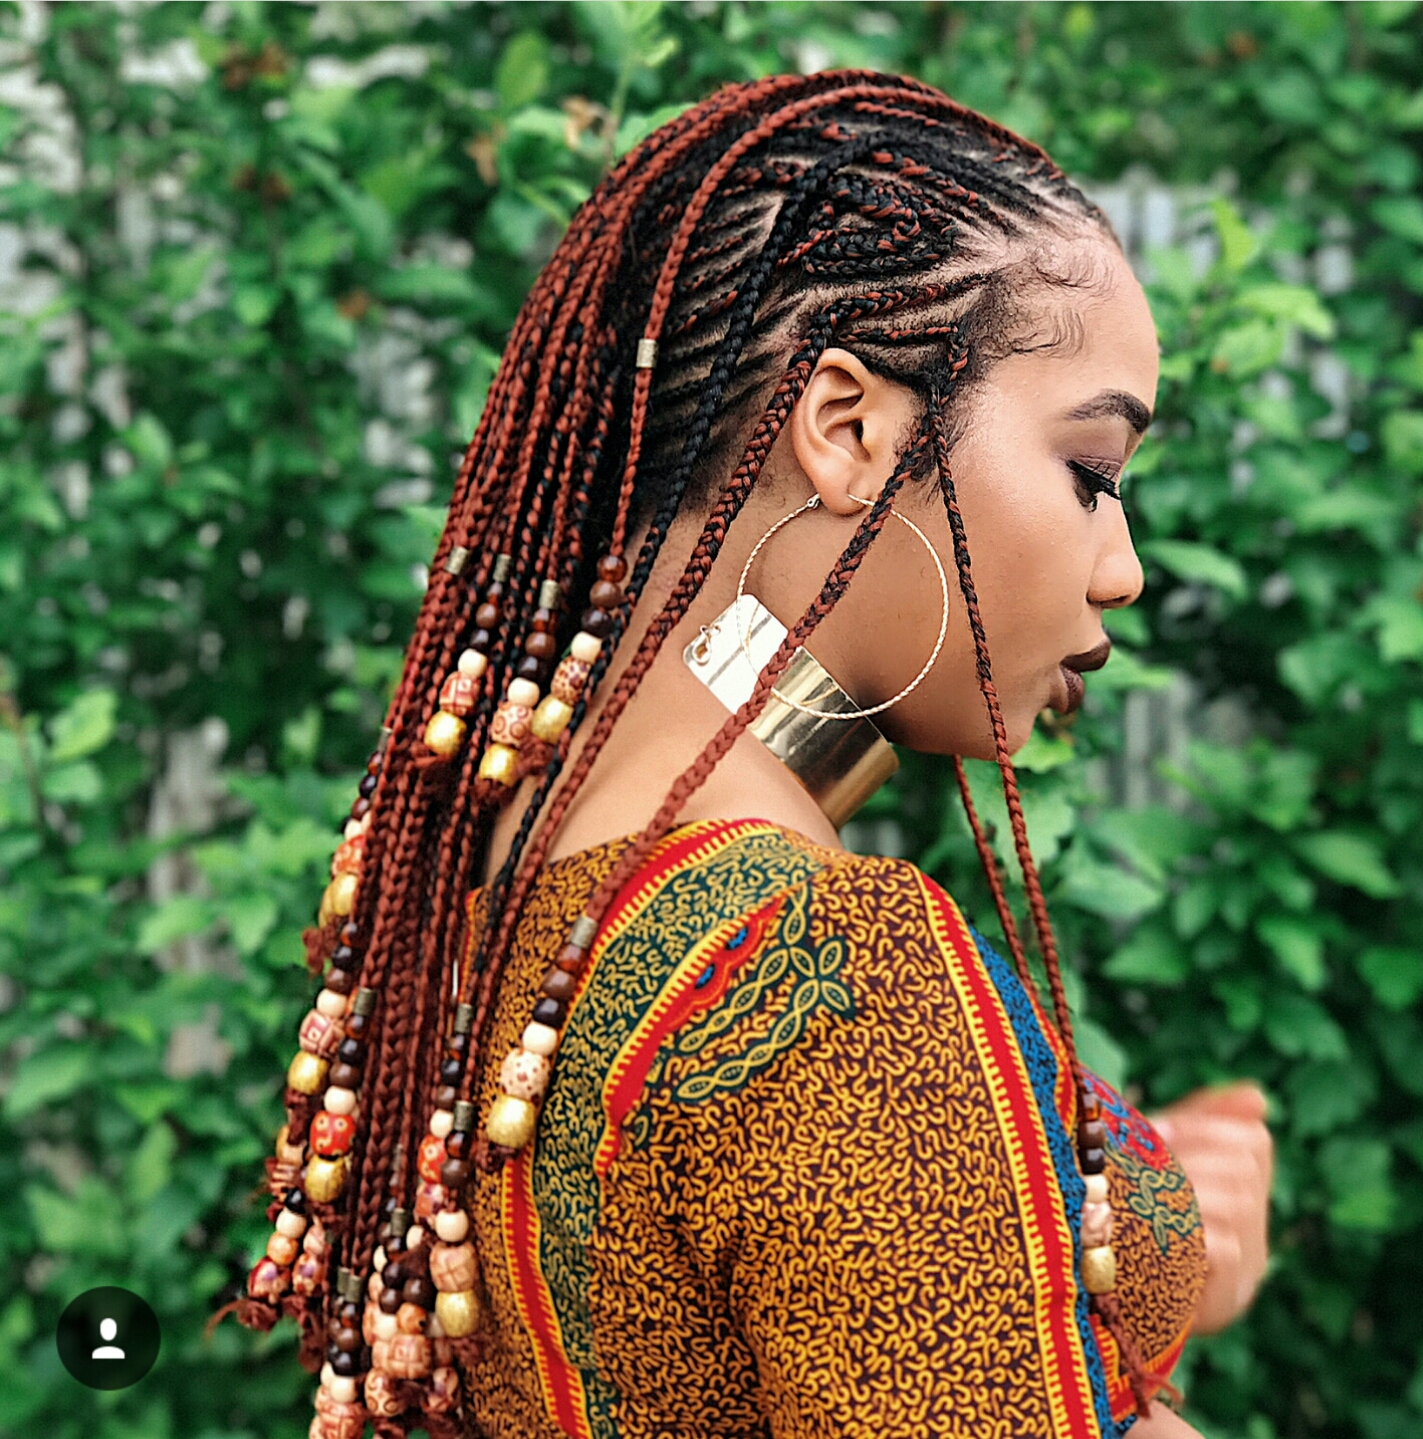 Happycurlhappygirl Has The Classic Box Braids Look Down Pat